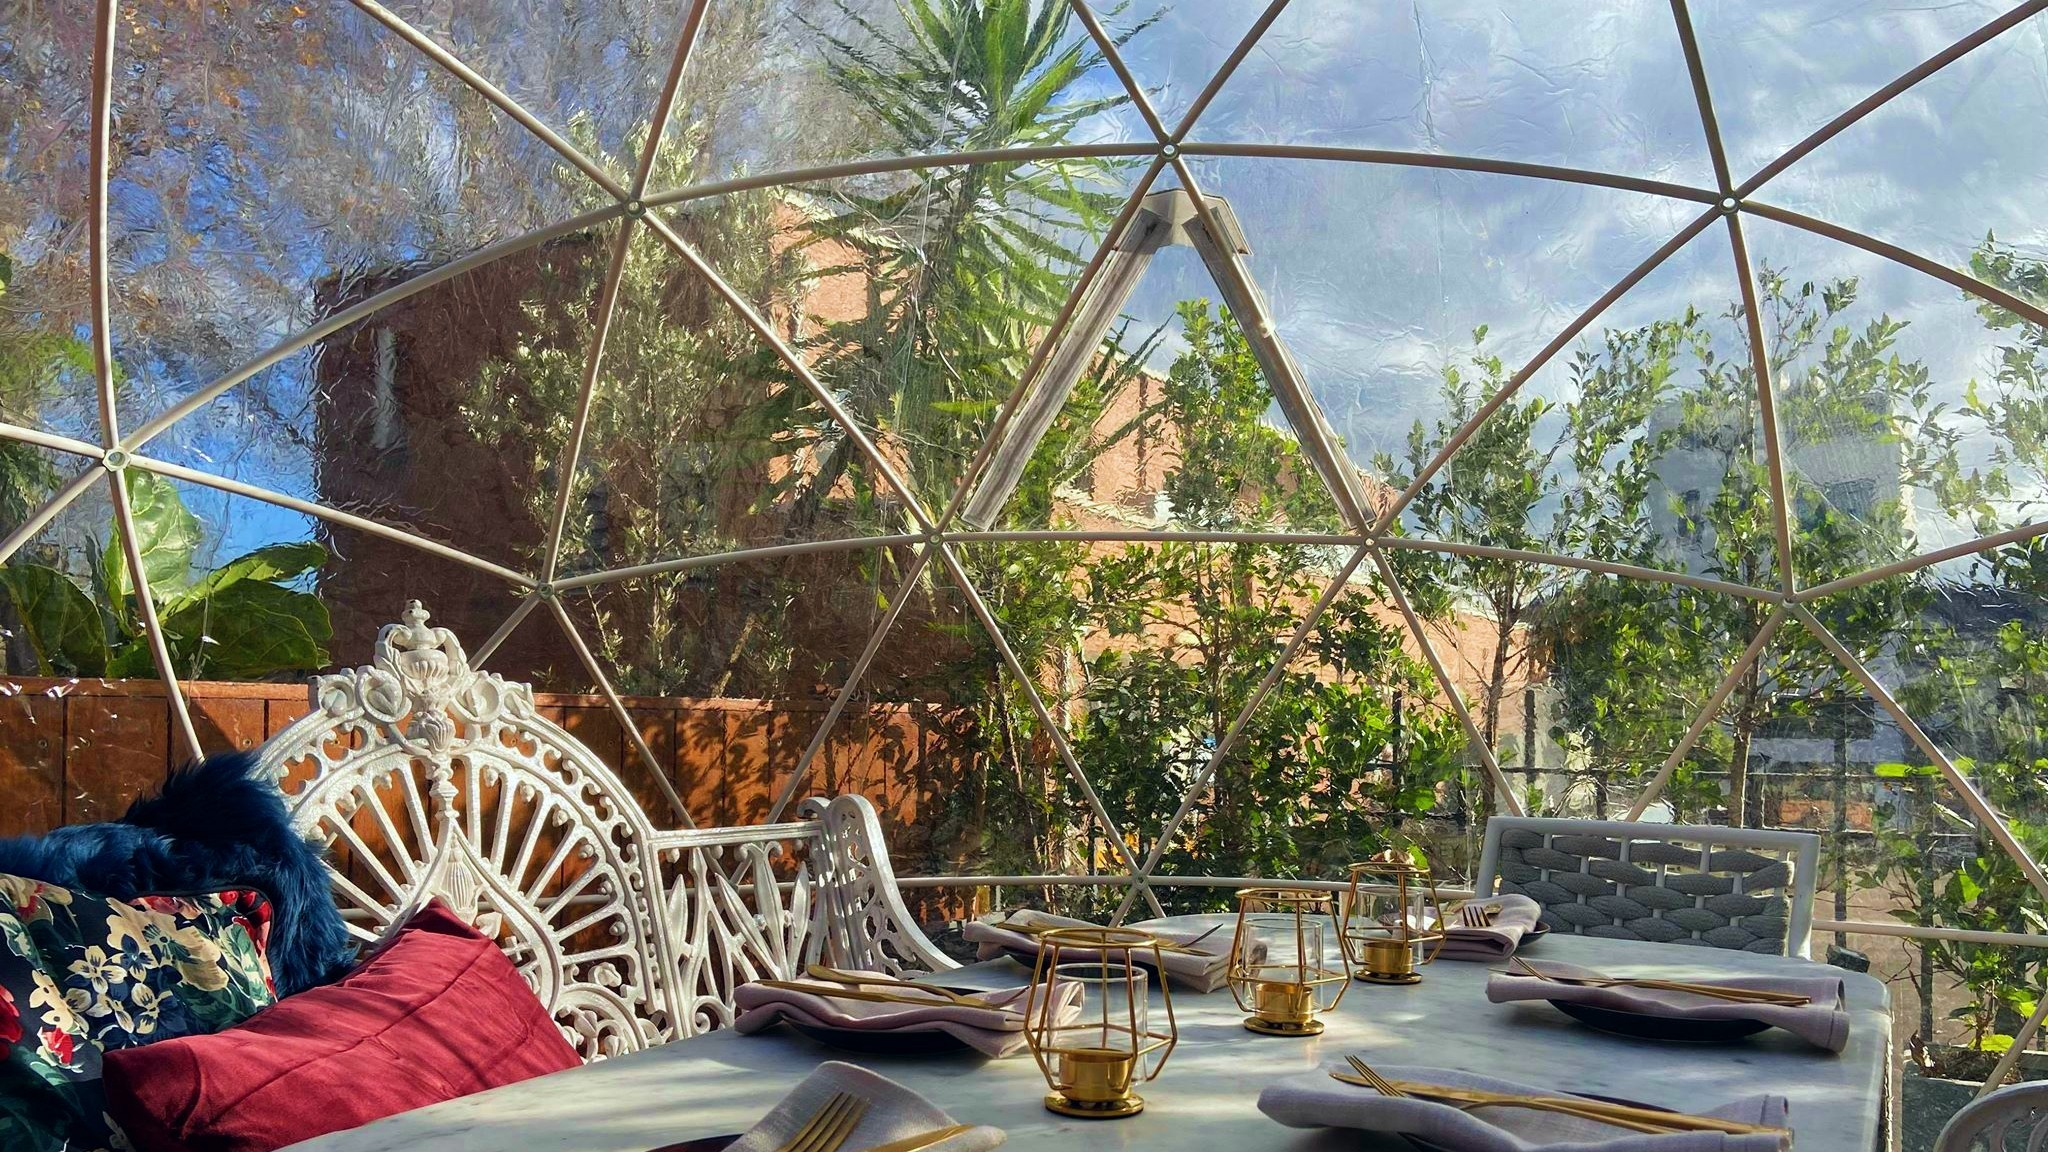 You can dine in style this winter at the Winery's laneway igloo garden